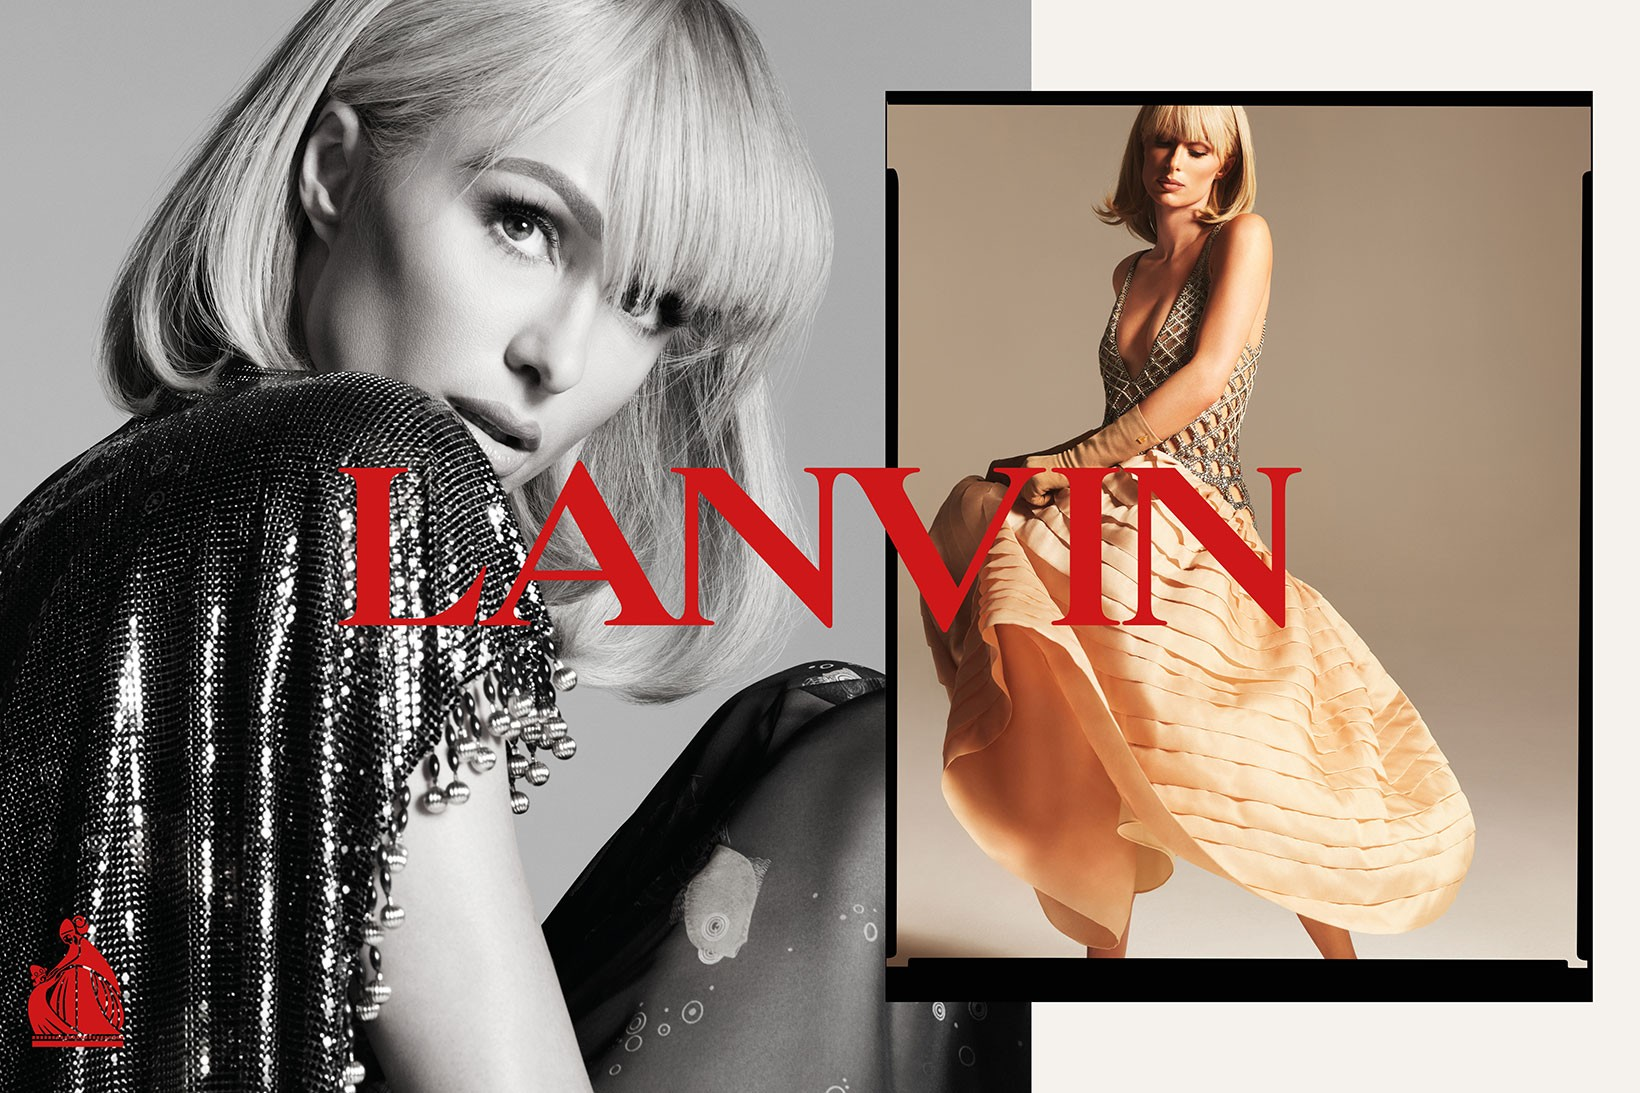 Paris Hilton starring in Lavin spring 2021 campaign. Fosun is the owner of Lanvin.